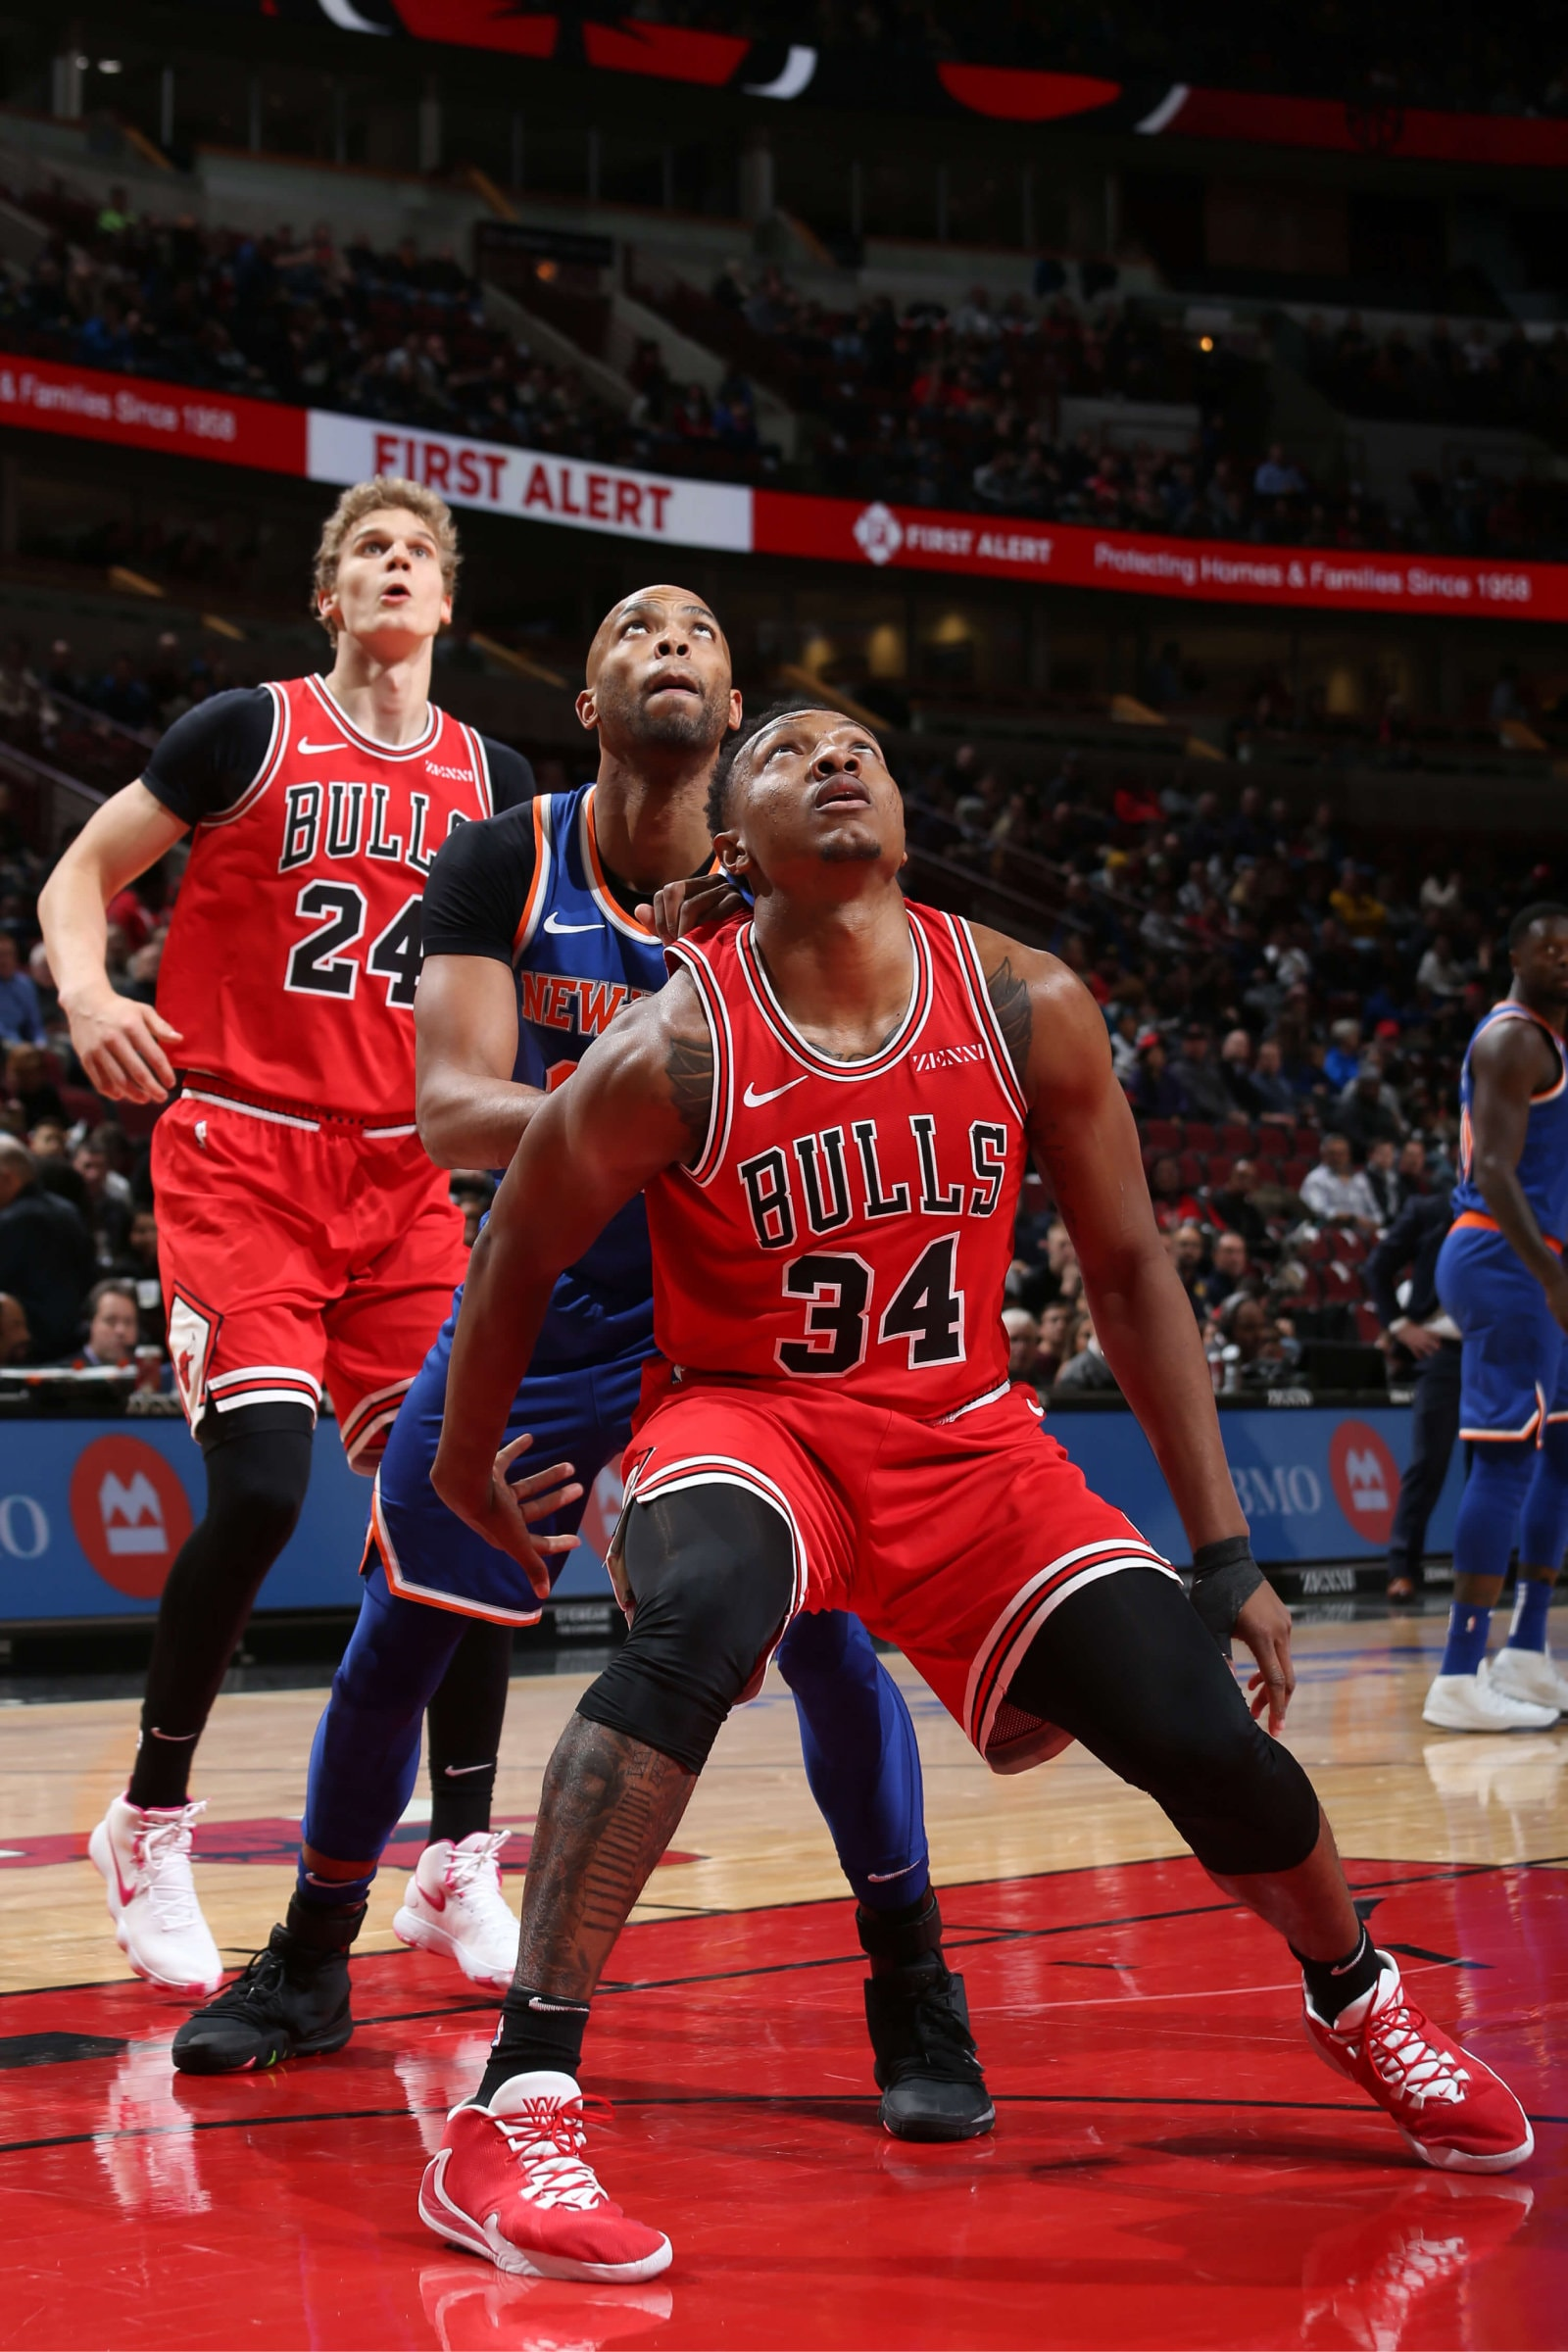 Taj Gibson #67 of the New York Knicks and Wendell Carter Jr. #34 of the Chicago Bulls fights for position during the game against the New York Knicks on November 12, 2019 at the United Center in Chicago, Illinois.